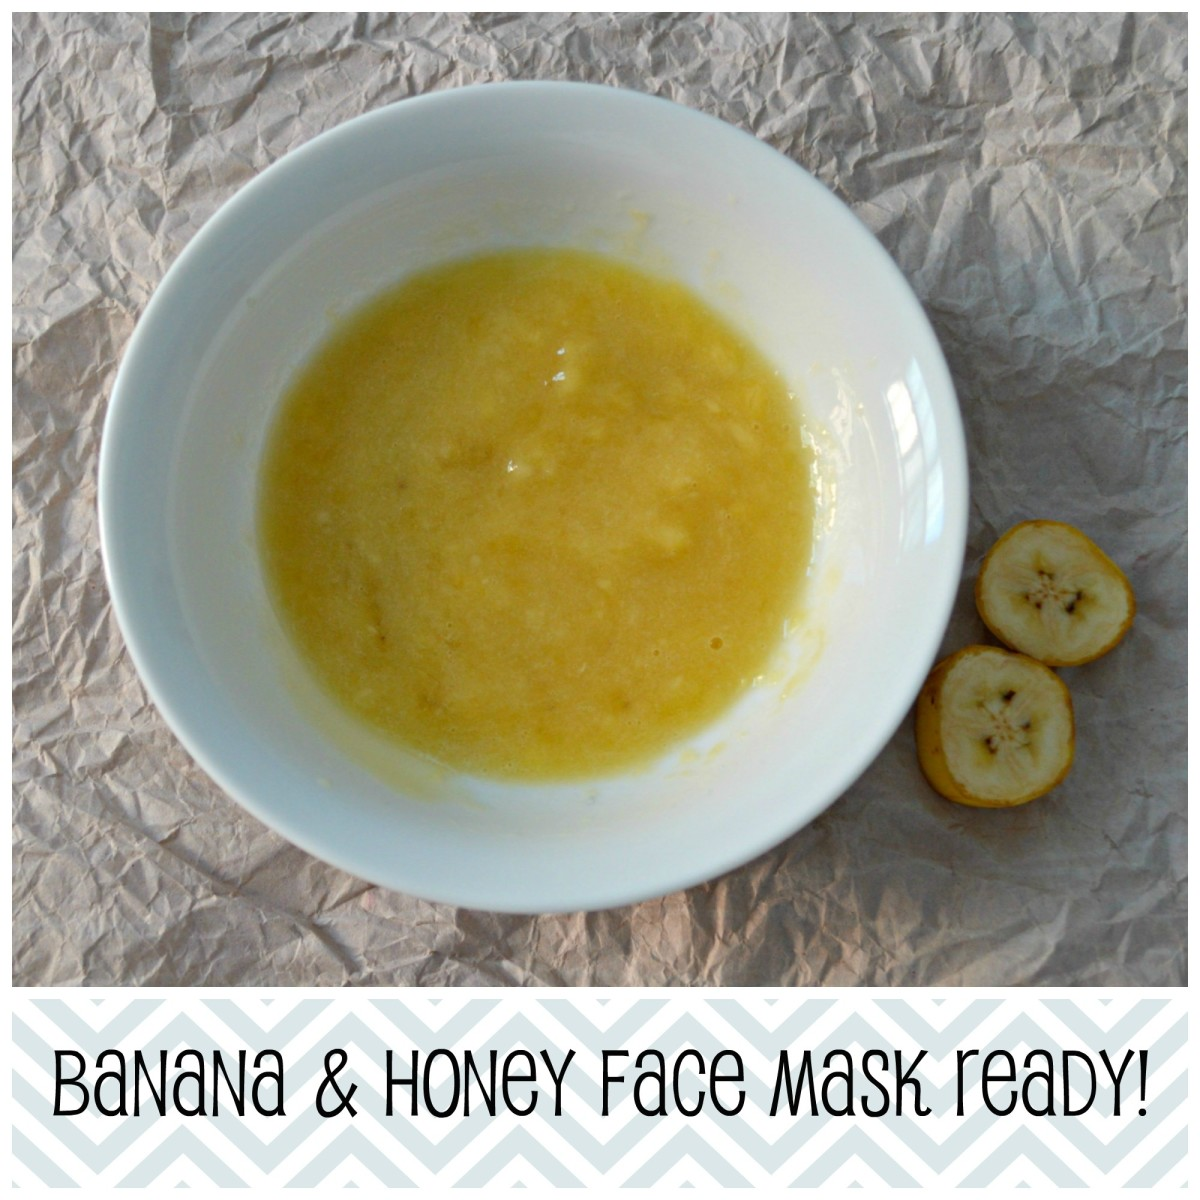 Your face mask is ready now! Apply on a clean face with clean fingers!